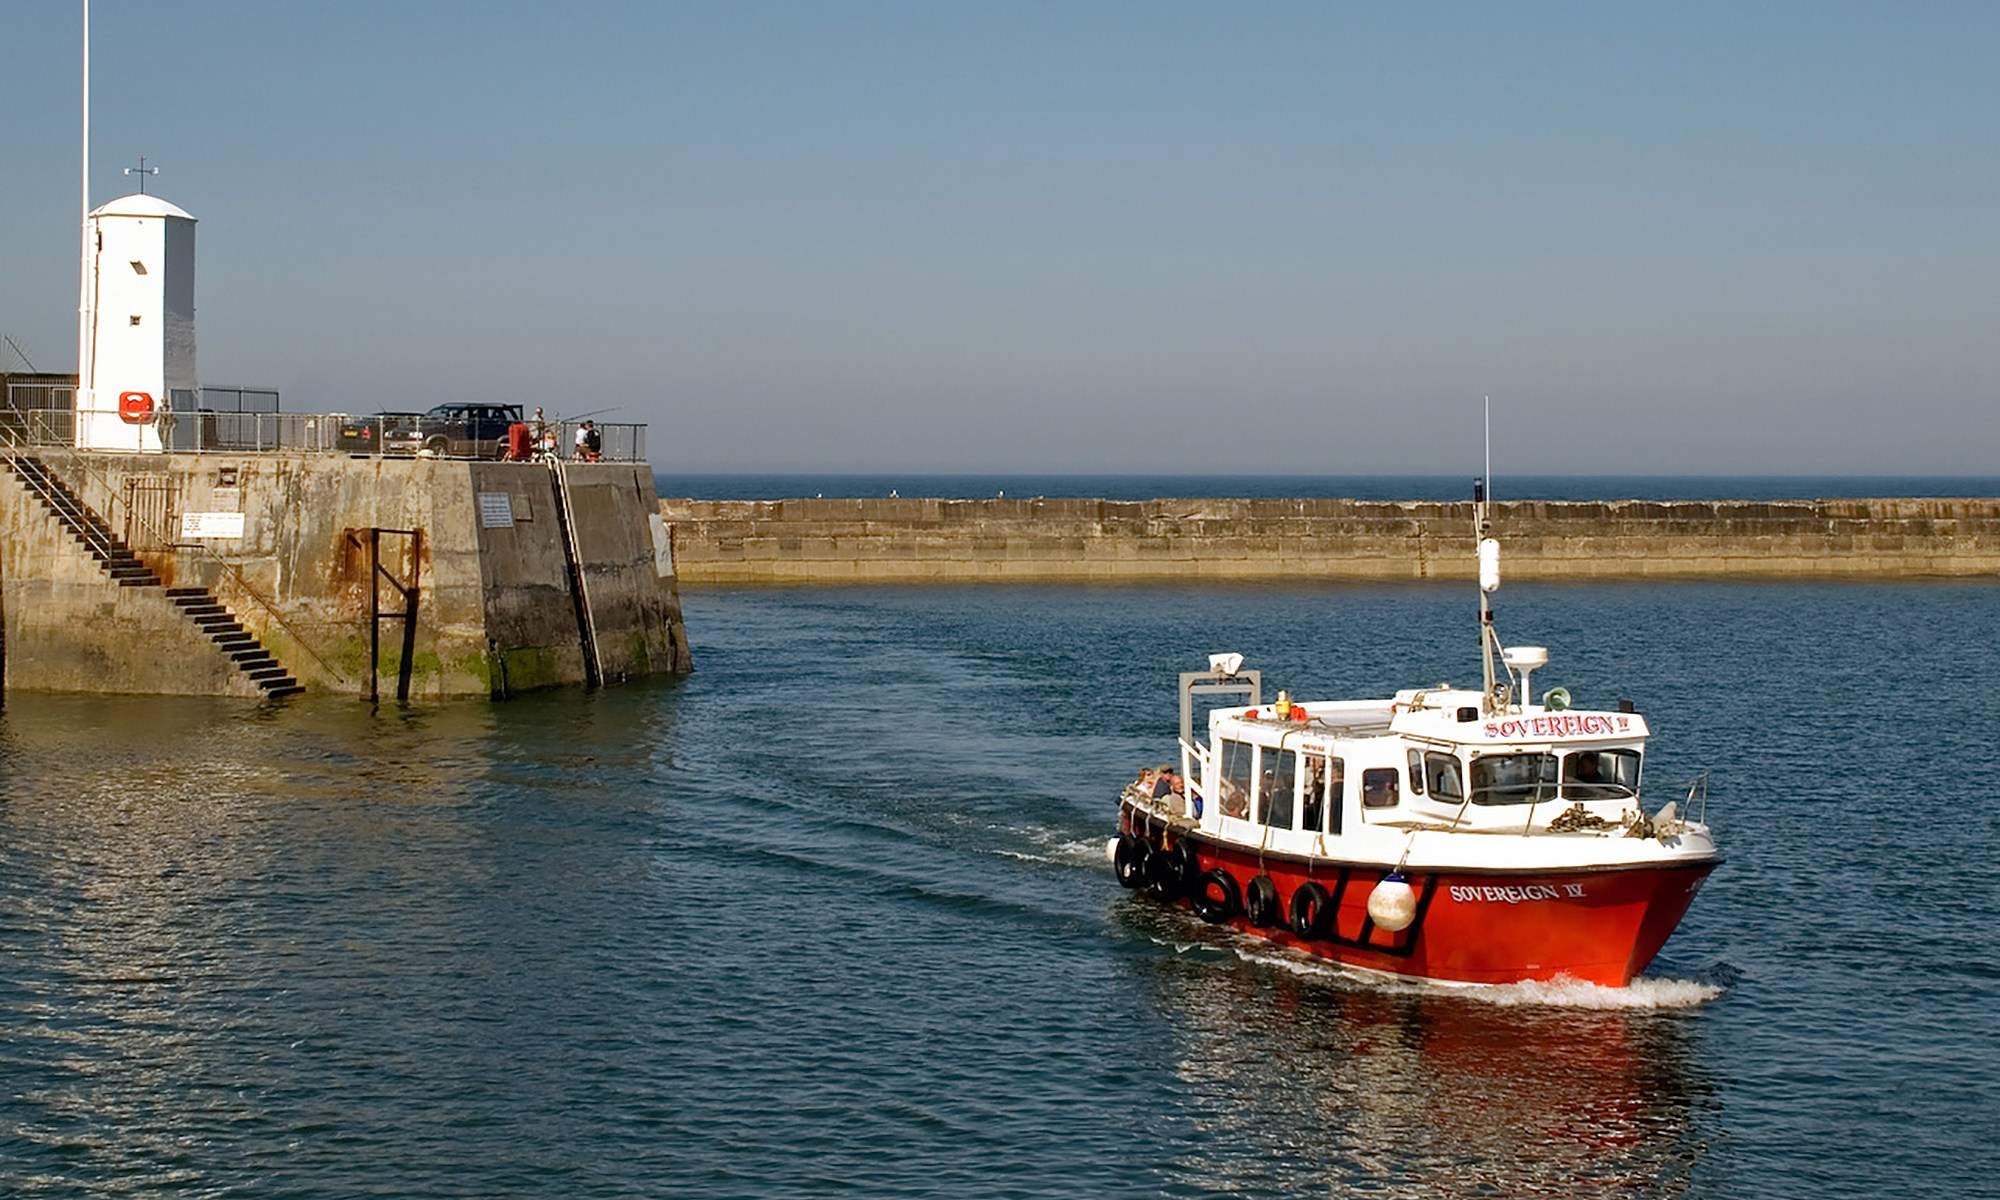 Boat at Seahouses, Northumberland